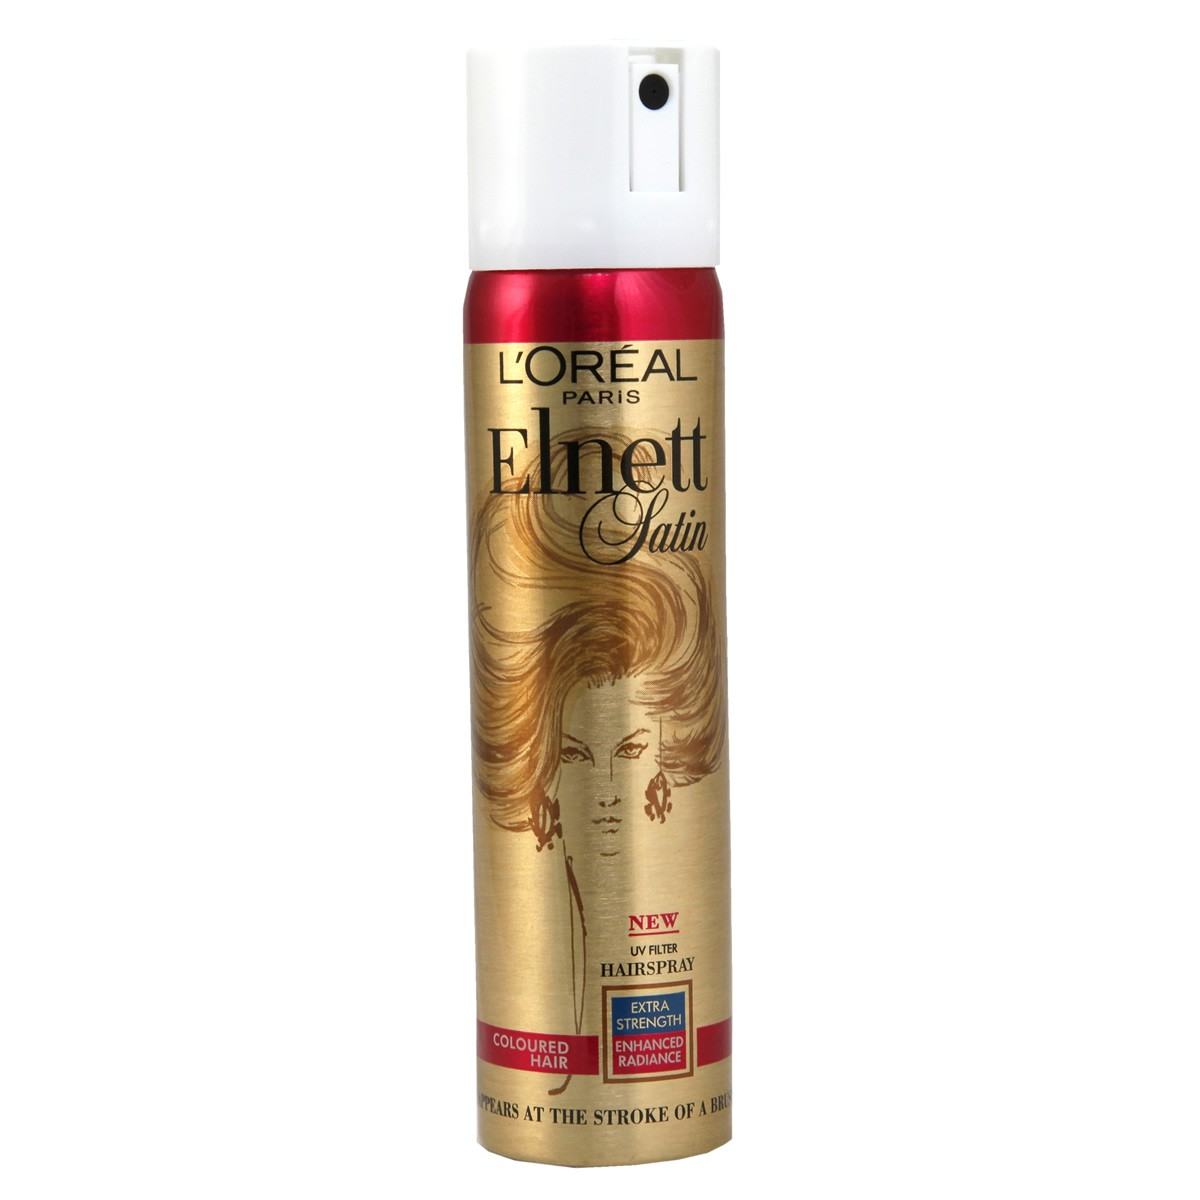 L'Oreal Paris Elnett Satin UV Filter Hairspray for Coloured Hair